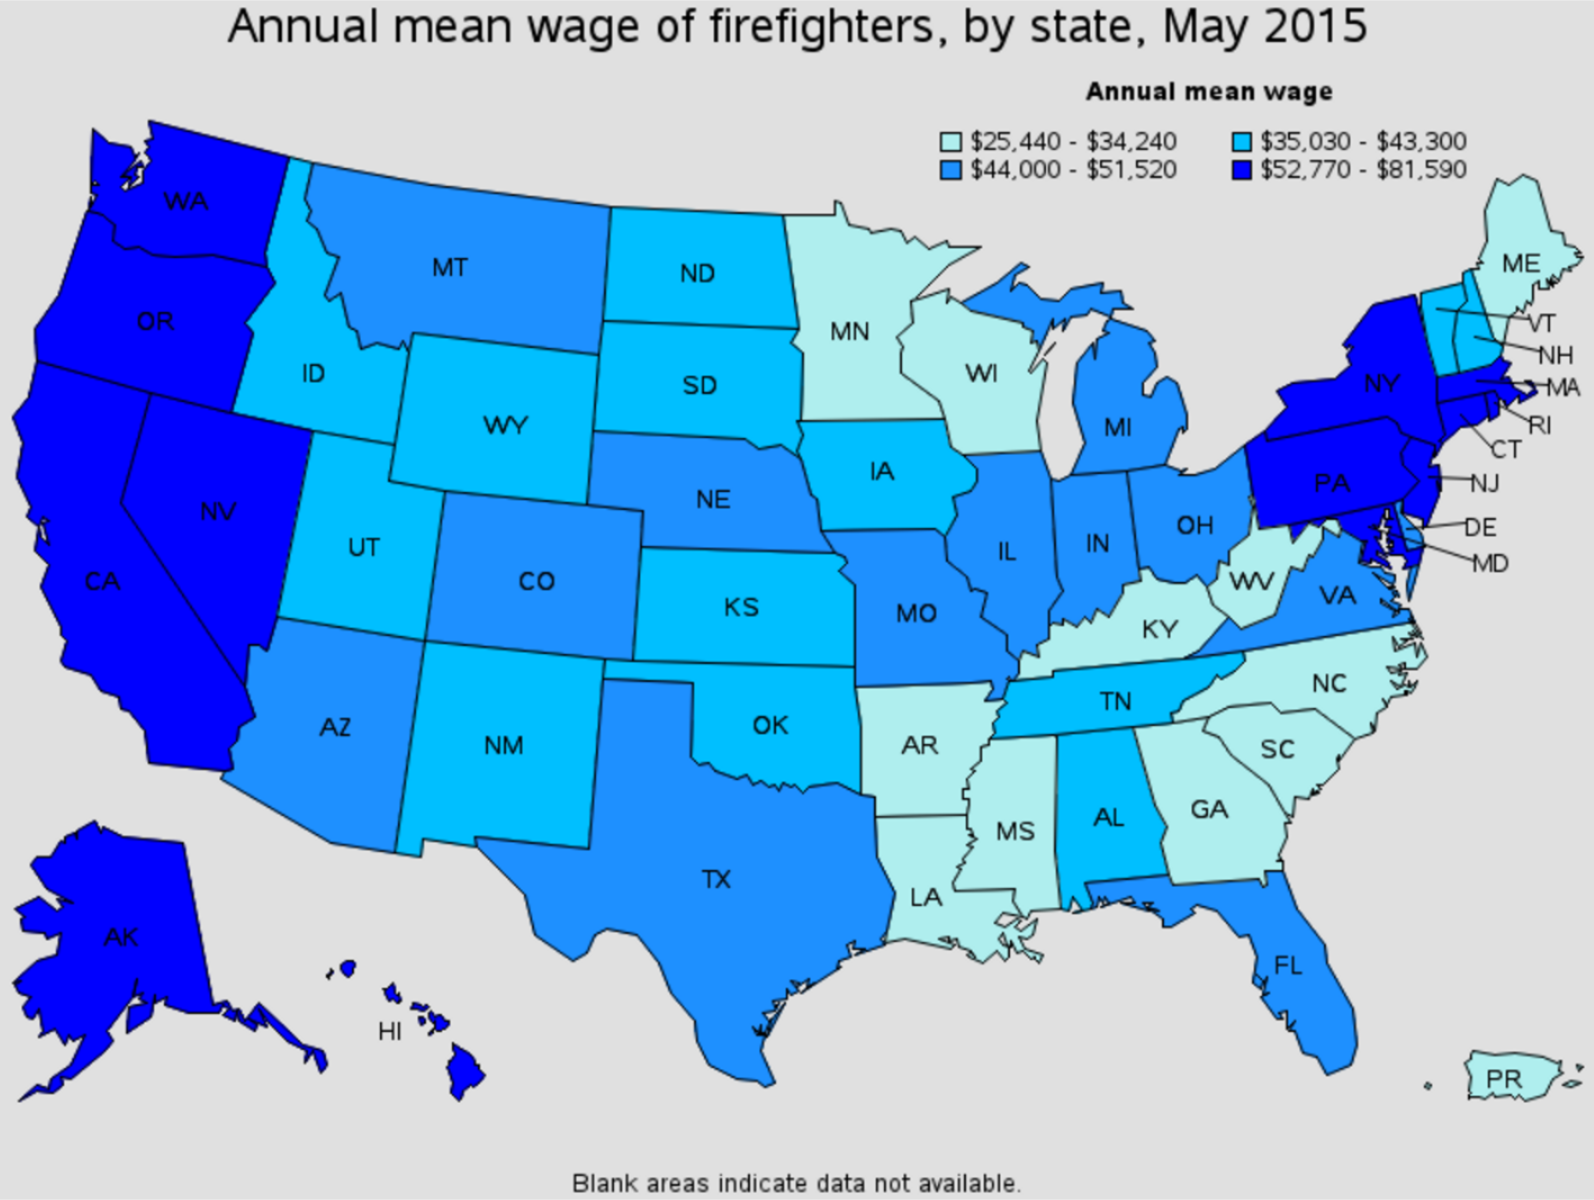 firefighter average salary by state Mesa Arizona